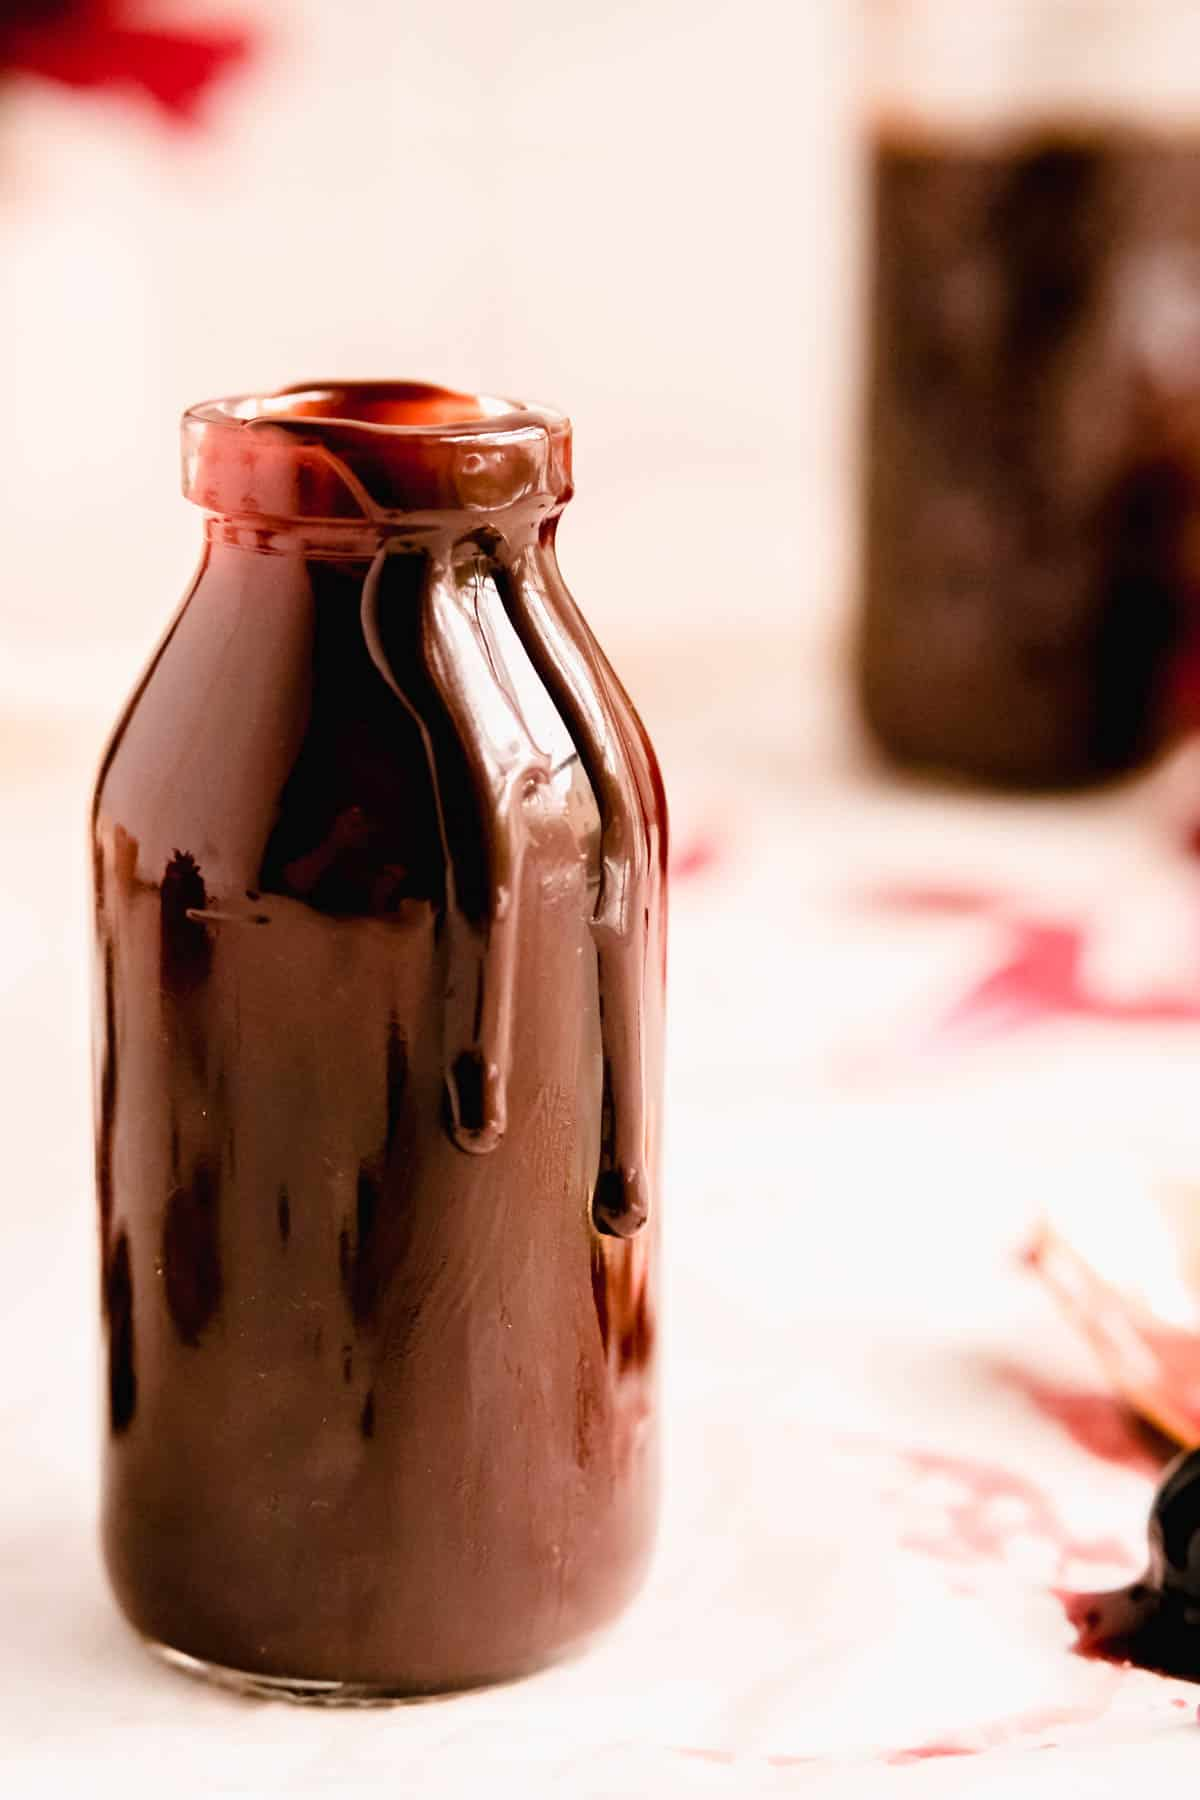 a jar with two big drops of hot fudge sauce dripping down the side with another jar of fudge in the background.